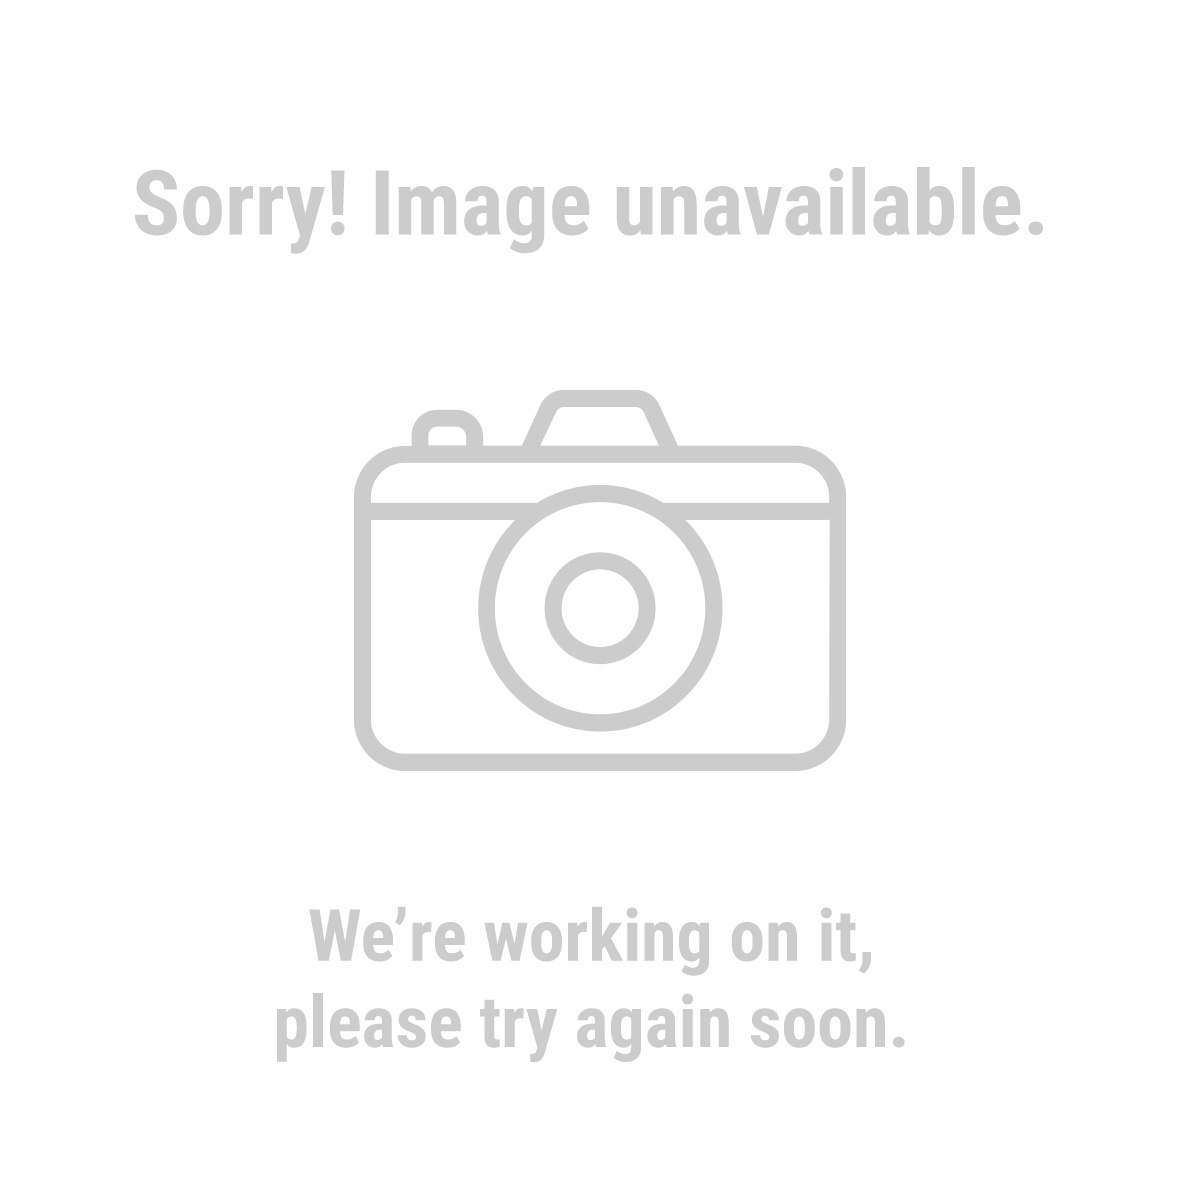 HFT 96710 25 Ft. 12 Gauge Triple Tap Extension Cord with Indicator Light